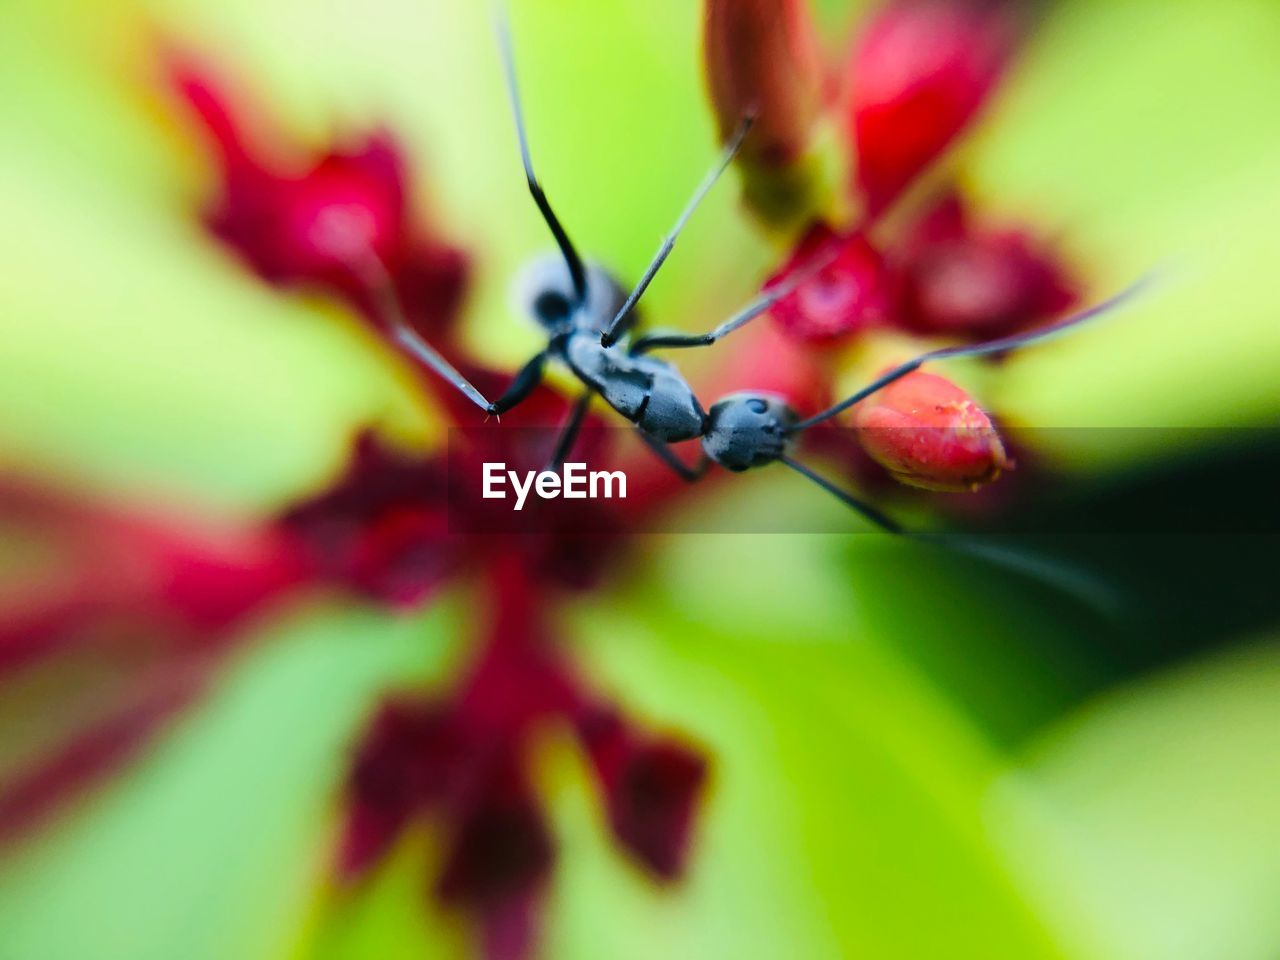 selective focus, close-up, plant, no people, growth, plant part, day, leaf, green color, invertebrate, beauty in nature, nature, freshness, fruit, insect, animal wildlife, fragility, red, one animal, animals in the wild